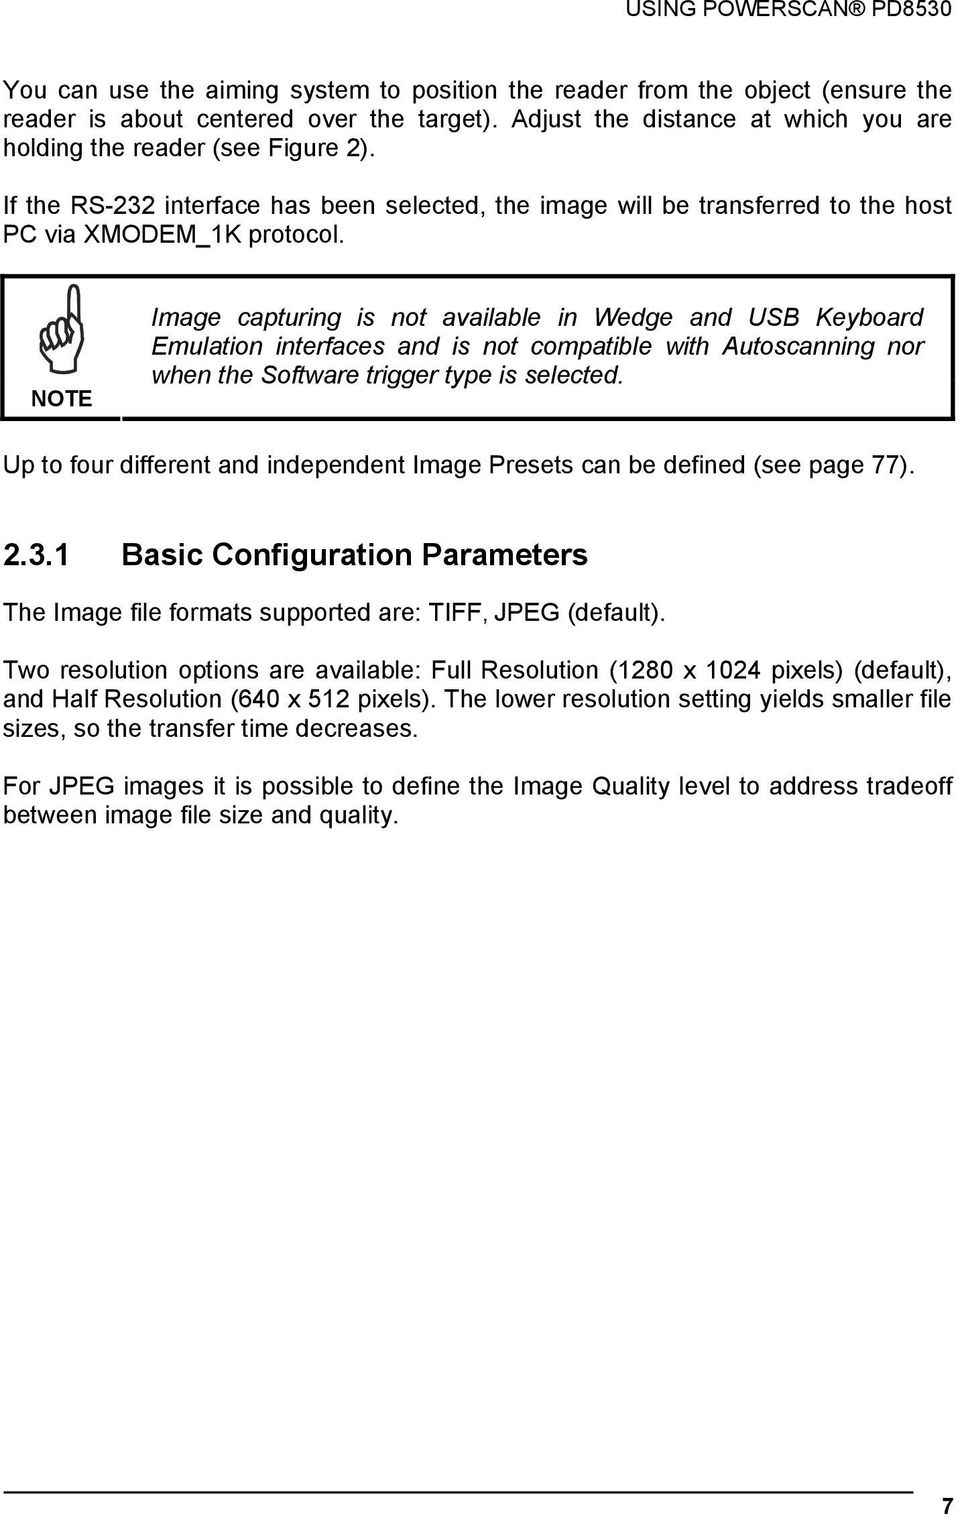 NOTE Image capturing is not available in Wedge and USB Keyboard Emulation interfaces and is not compatible with Autoscanning nor when the Software trigger type is selected.